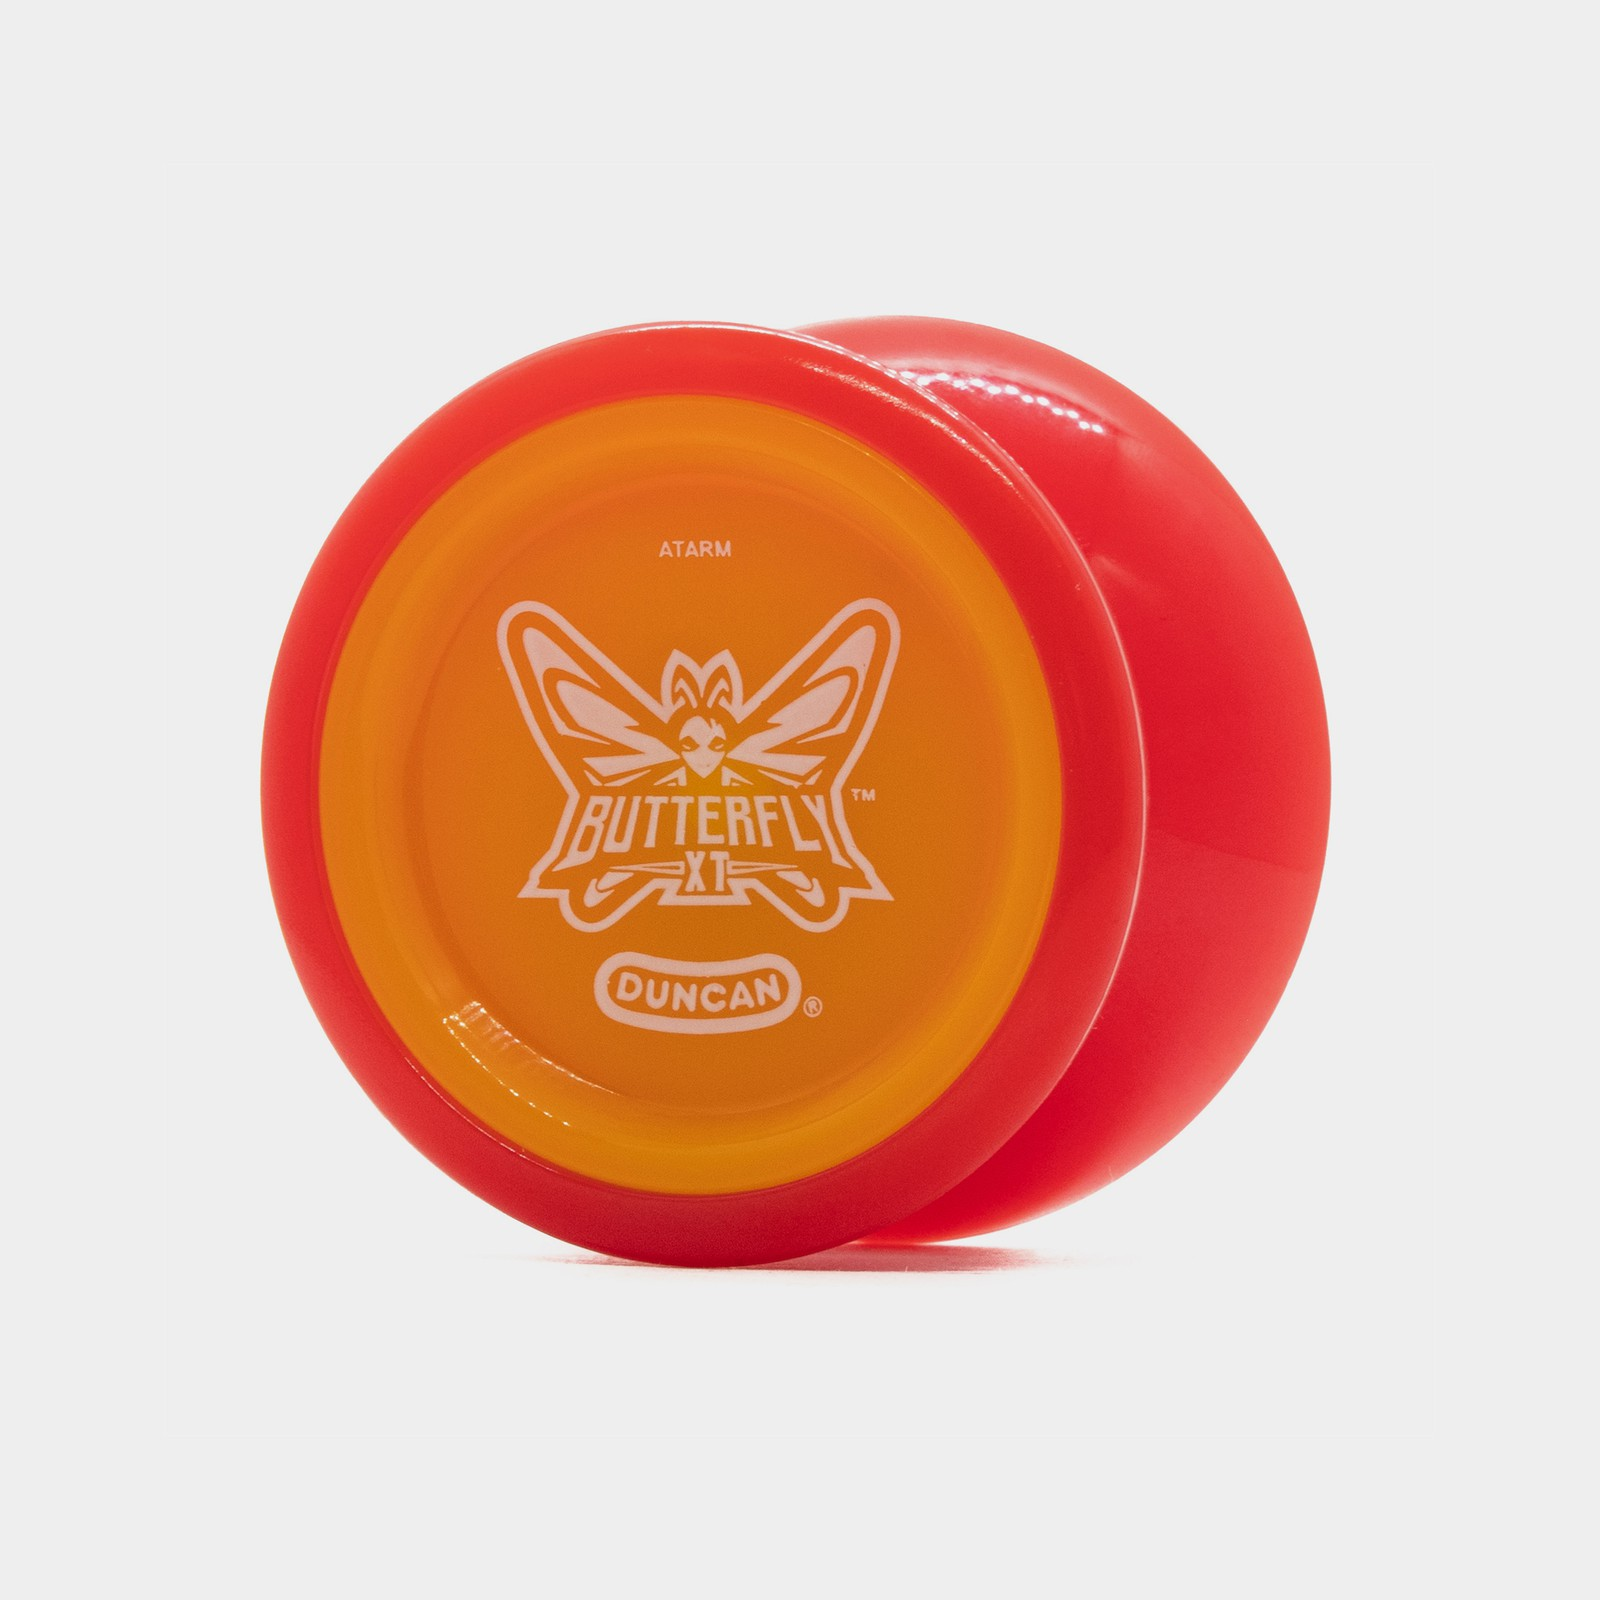 Butterfly XT yo-yo in Red / Orange by Duncan